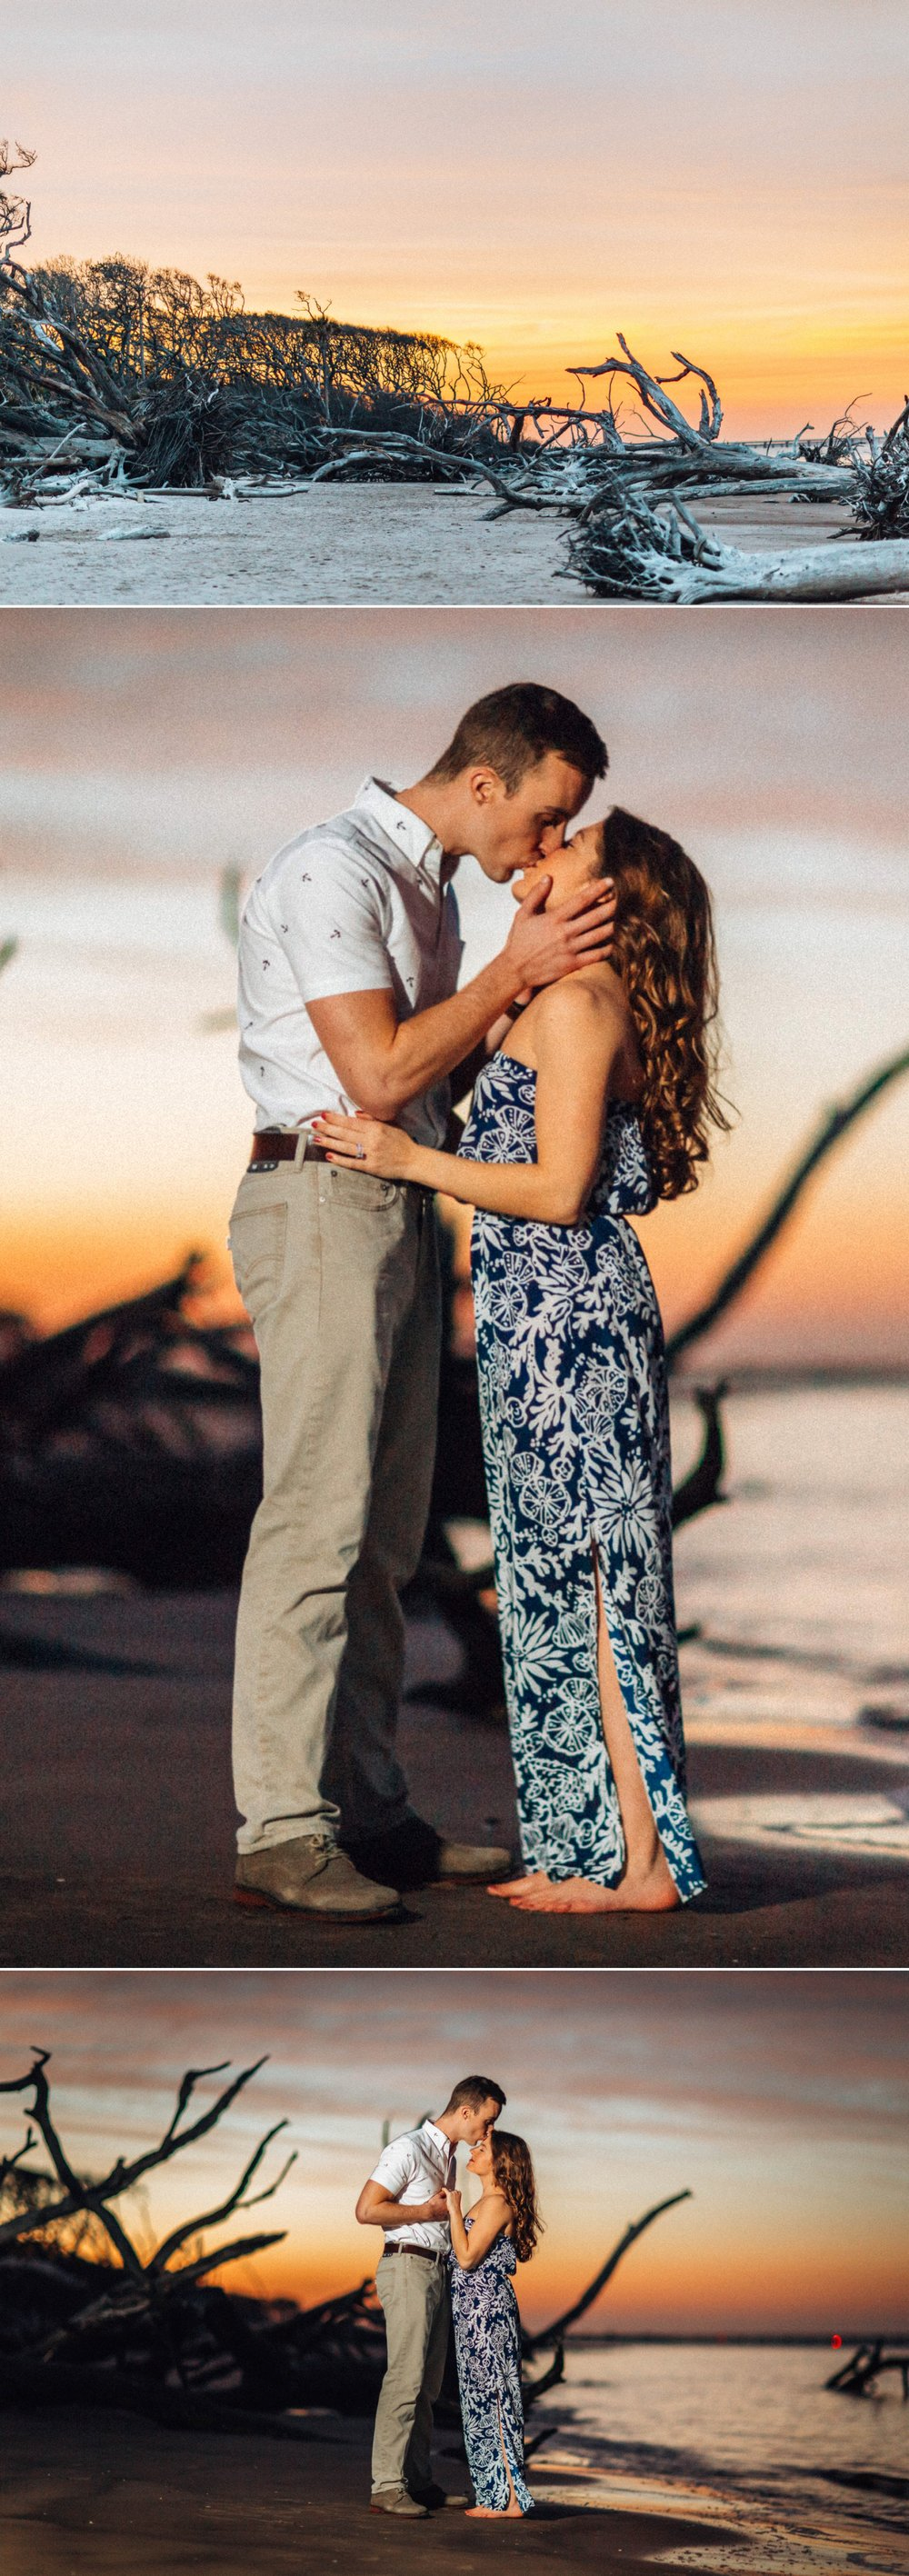 Alessi + Josh's romantic sunset engagement photo adventure on an amazing driftwood beach location at Big Talbot Island, Jacksonville, Florida // Engagement style inspiration: she wore a navy & white floral maxi dress, he wore white button-down, with khaki pants // Photographer by: Shaina DeCiryan Lifestyle + Wedding Photography @shainadeciryan